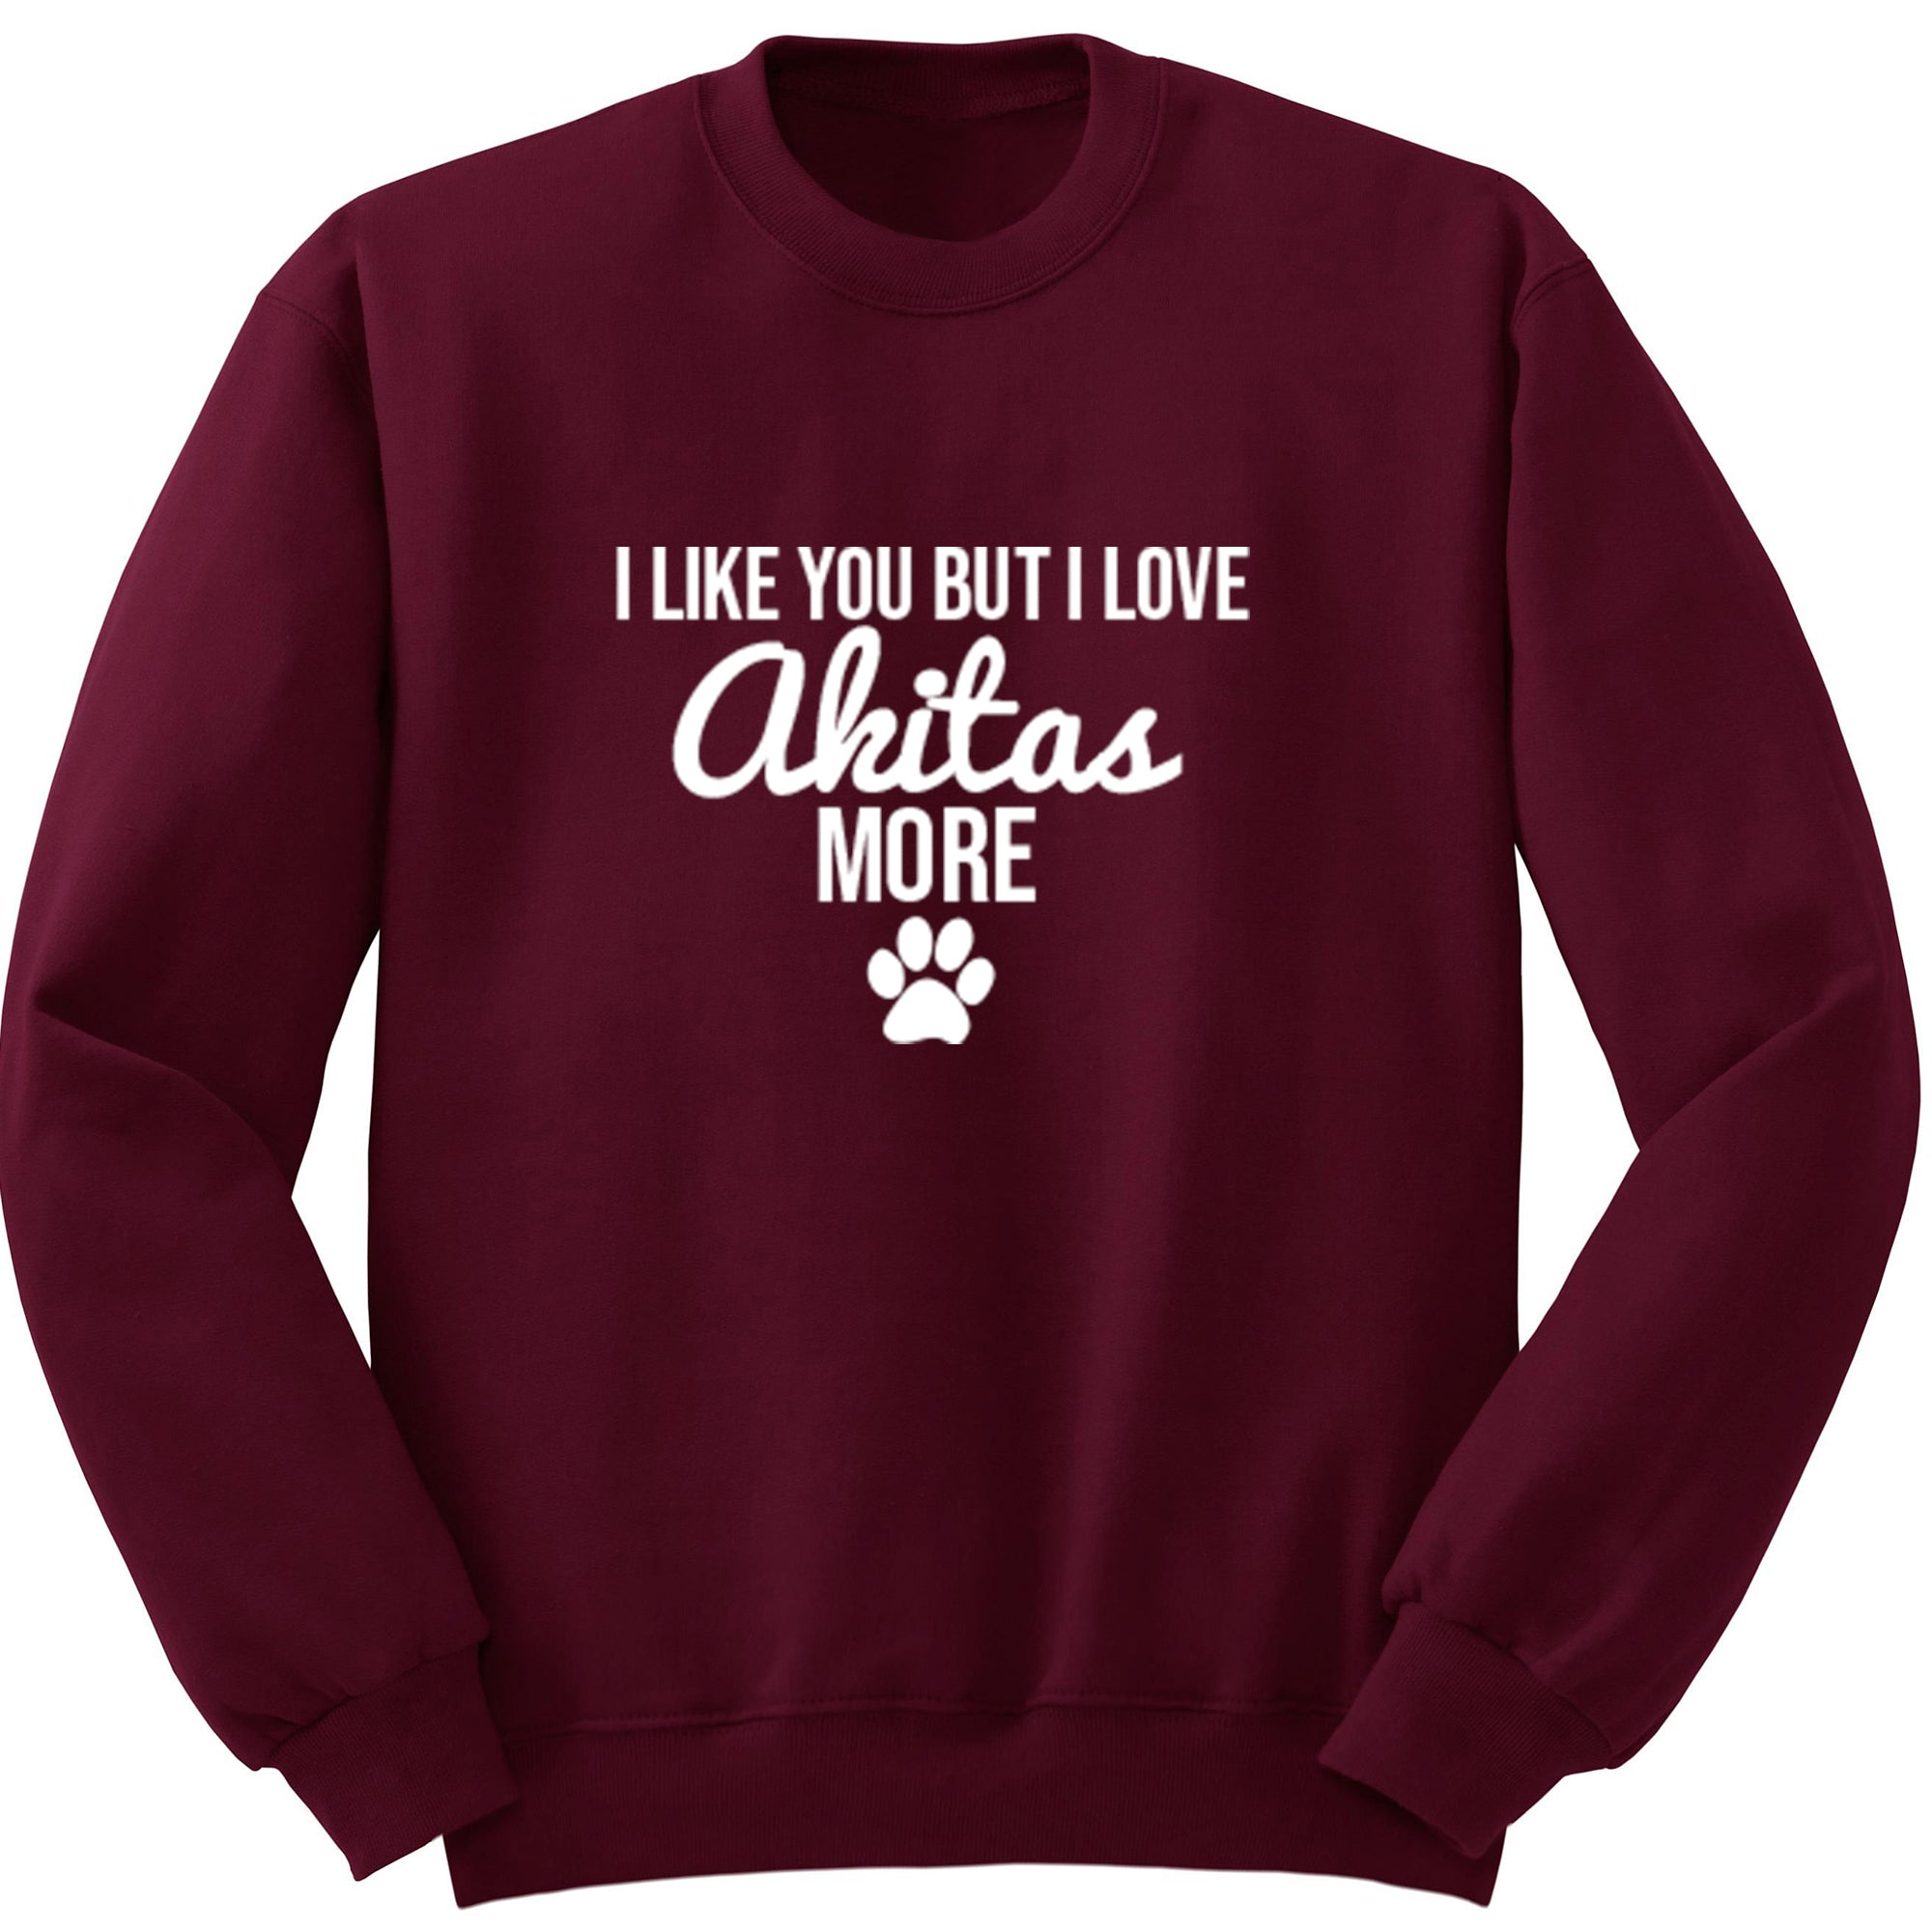 I Like You But I Love Akitas More Unisex Jumper S0108 - Illustrated Identity Ltd.